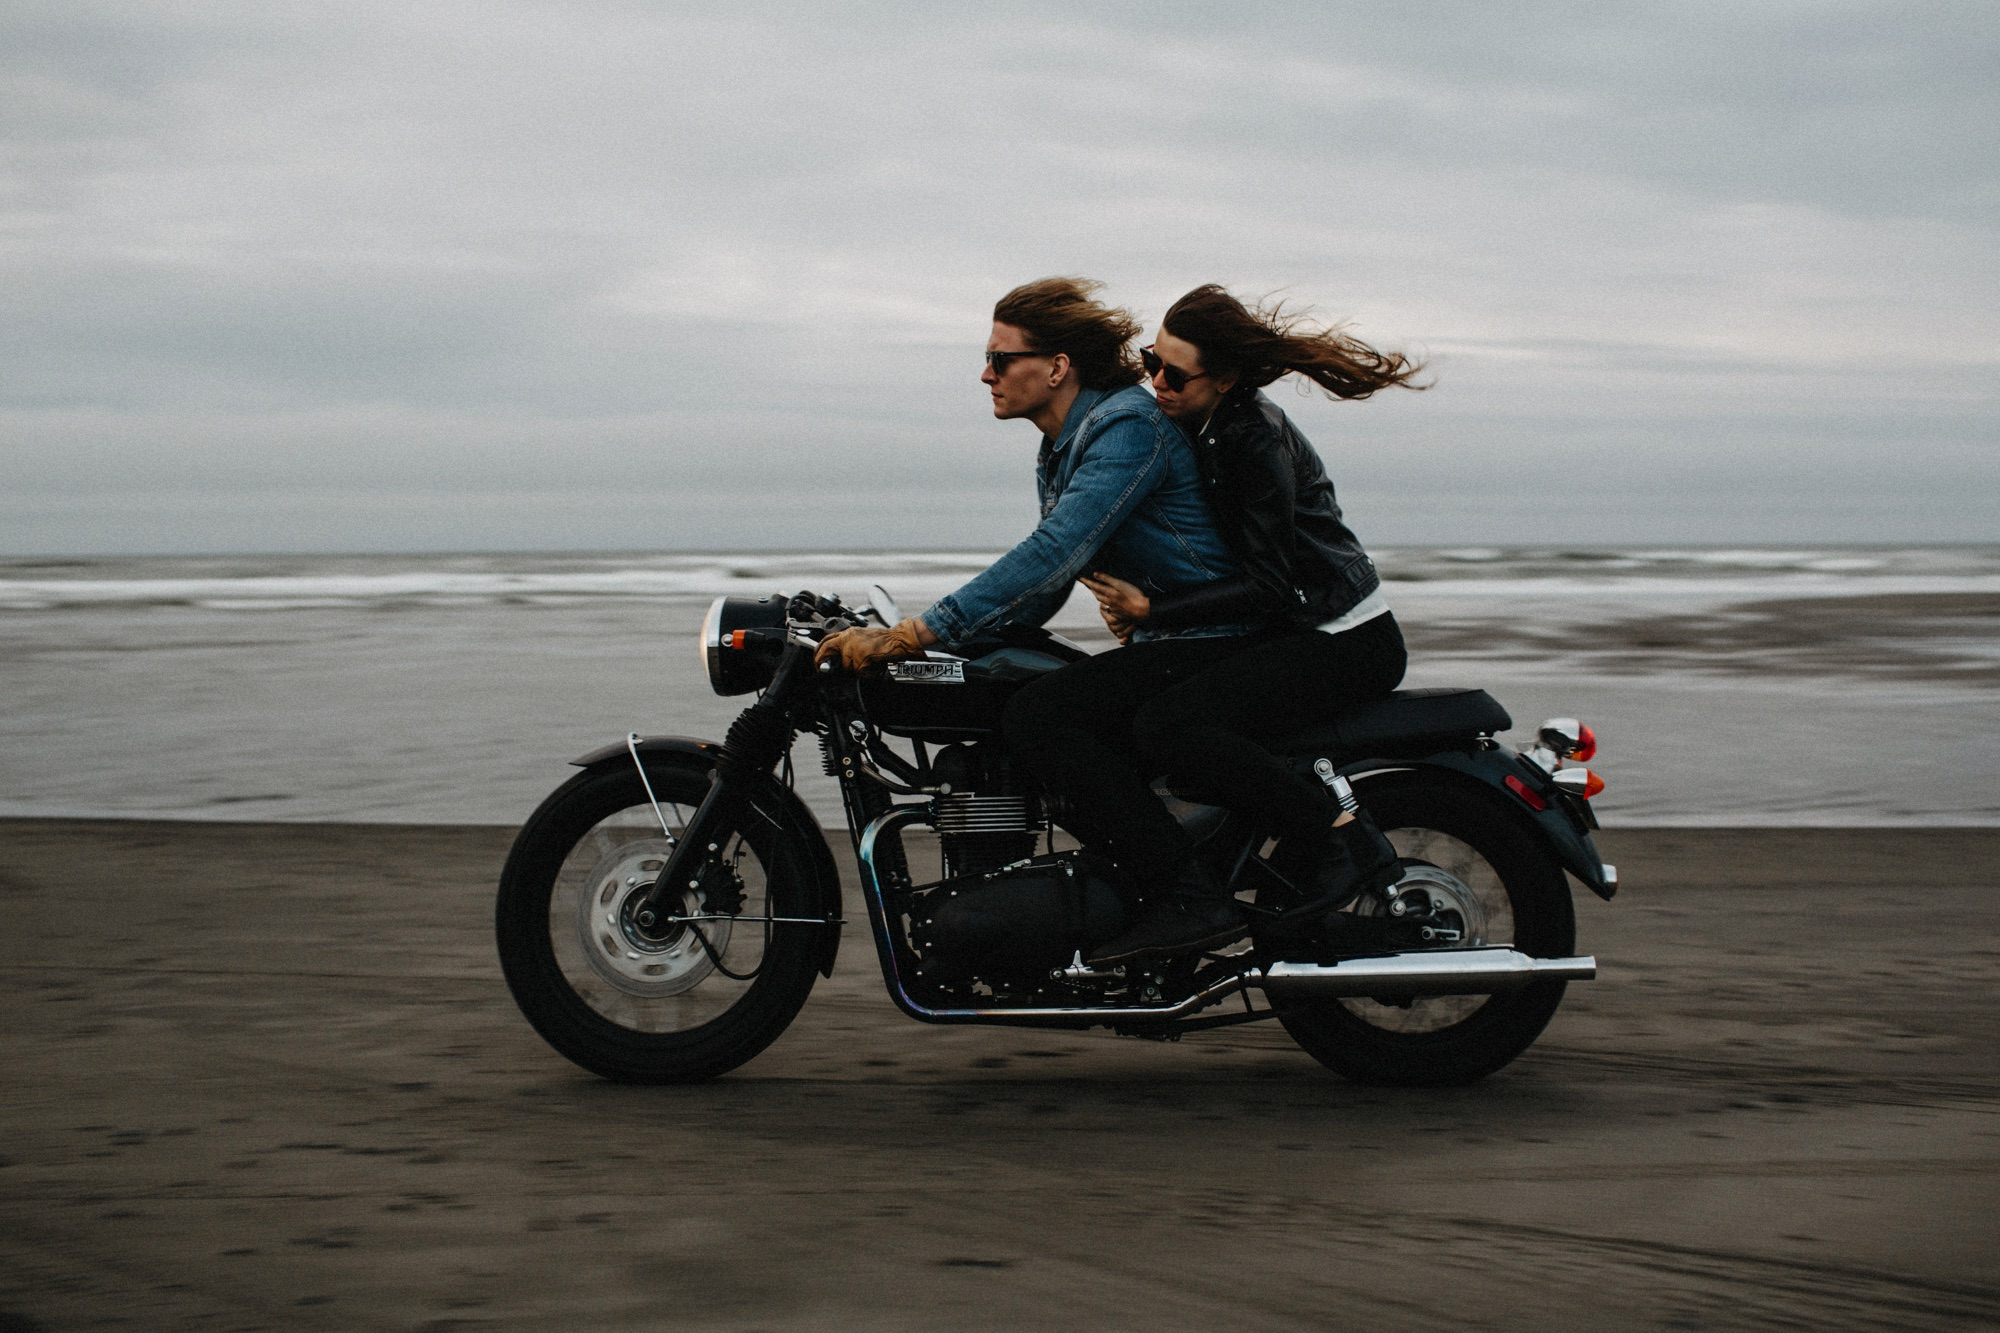 triumph motorcycle ride on beach